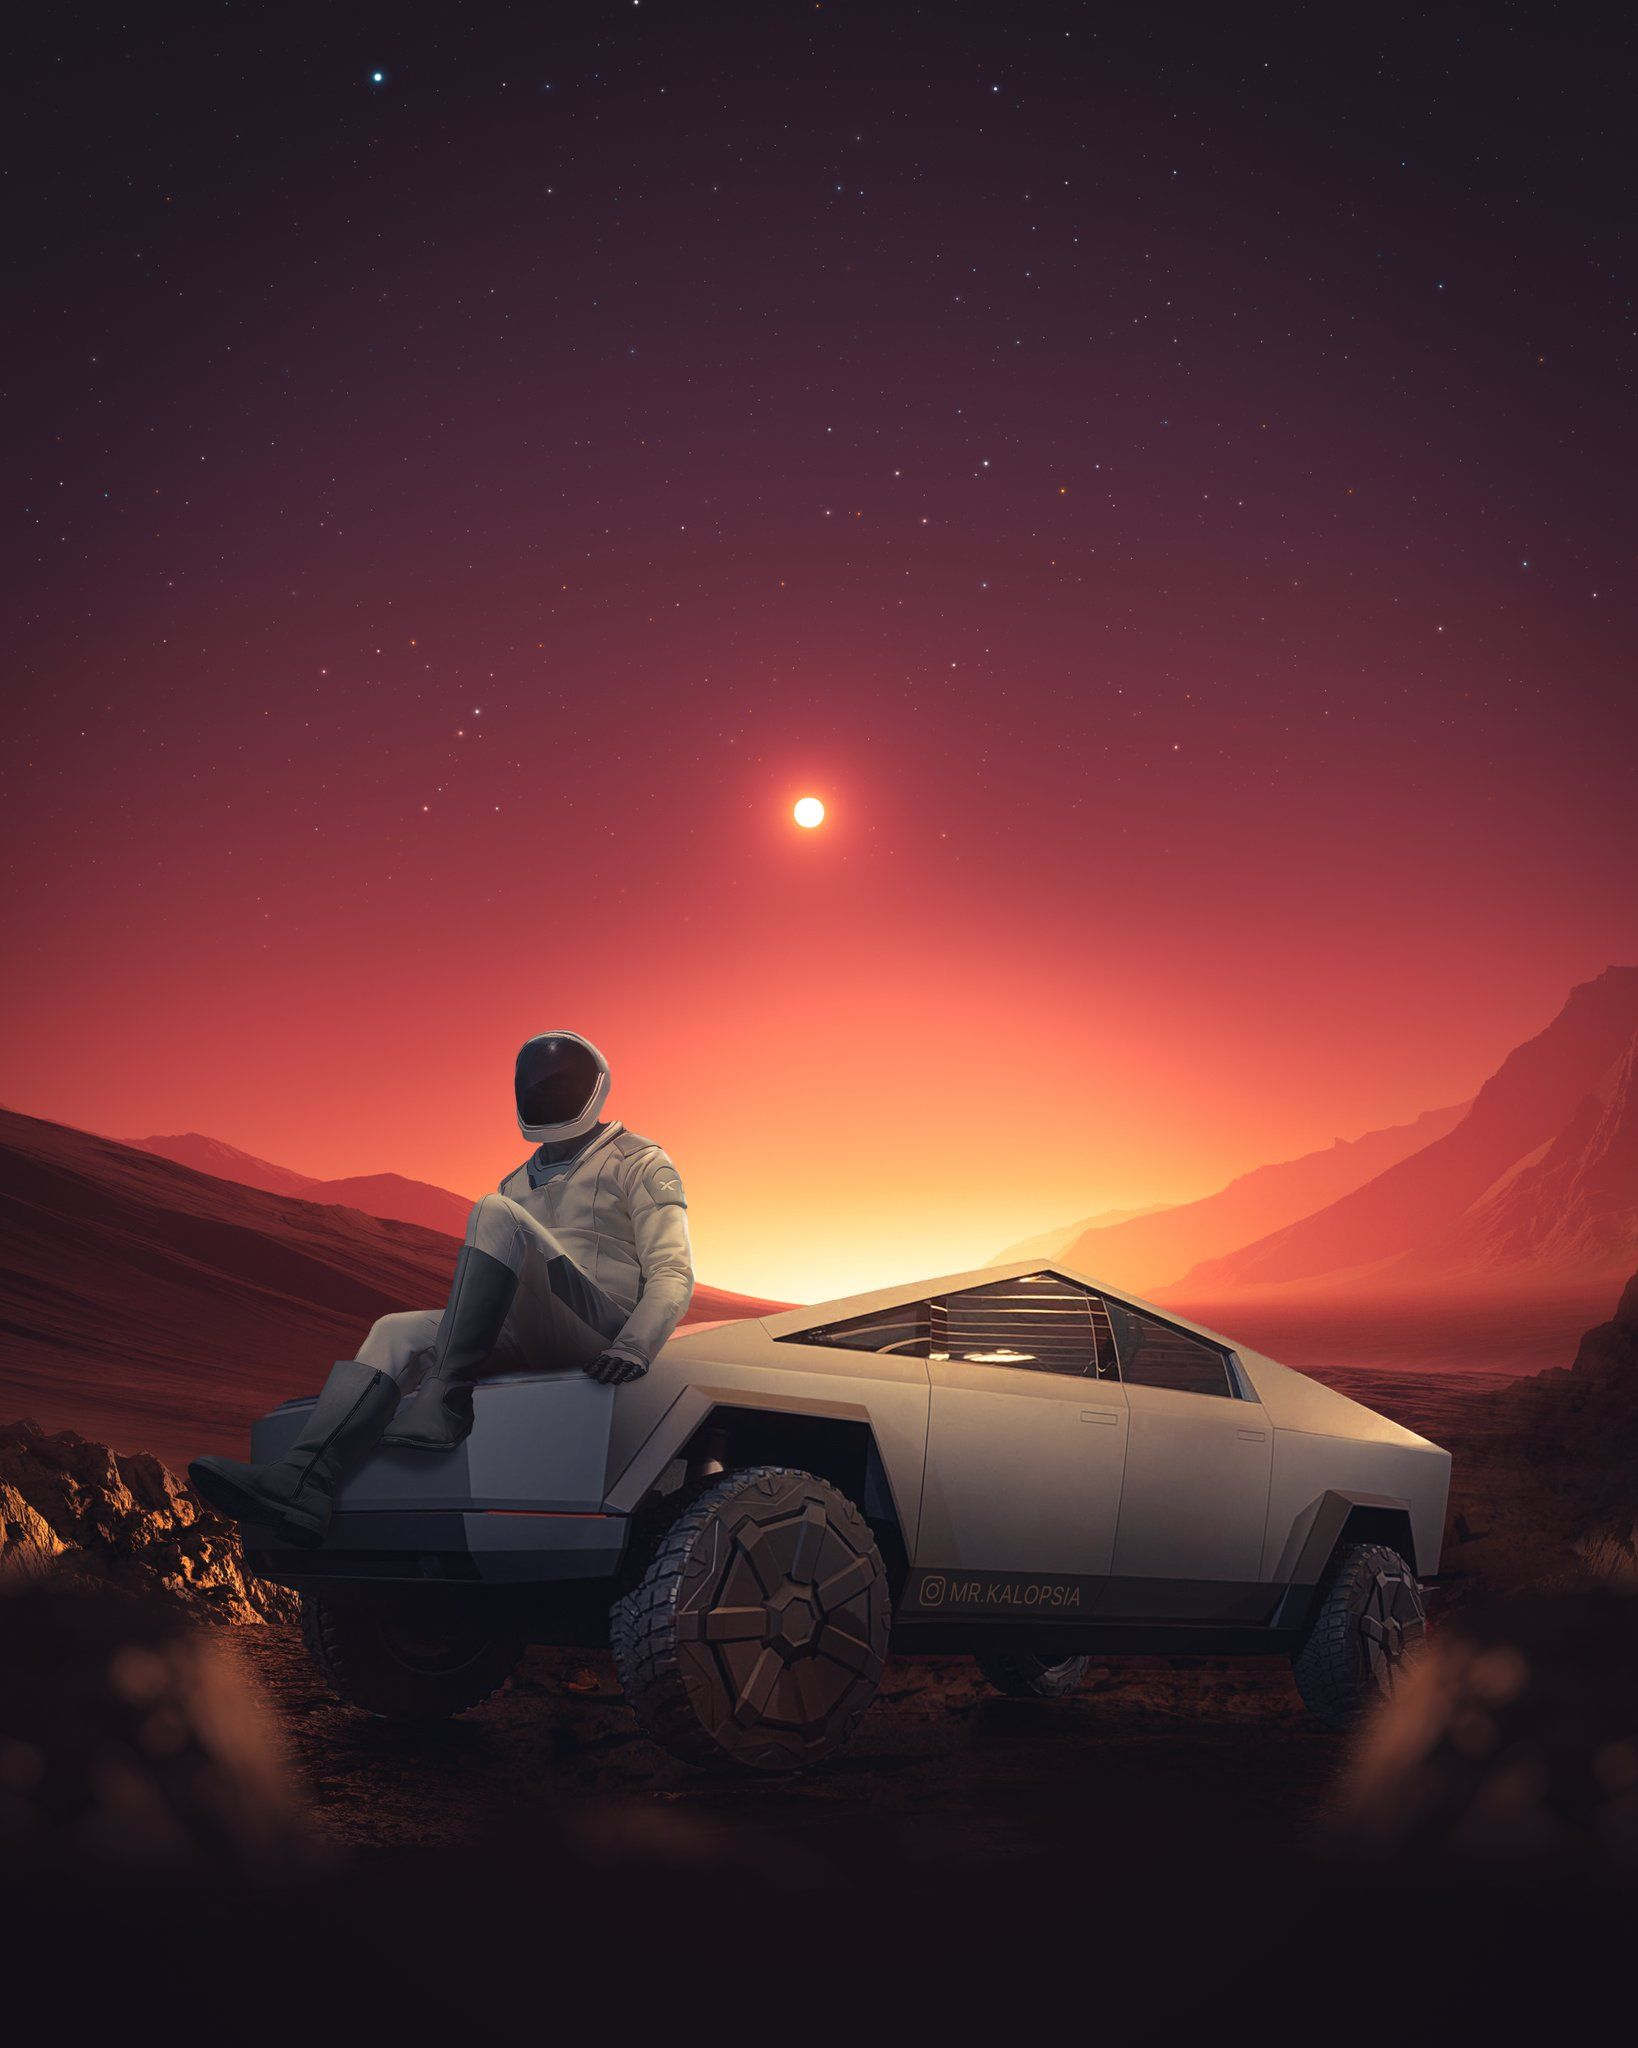 Starman Resting At His Tesla Cybertruck On Mars By Eashan Misra In 2020 Tesla Starman Mars